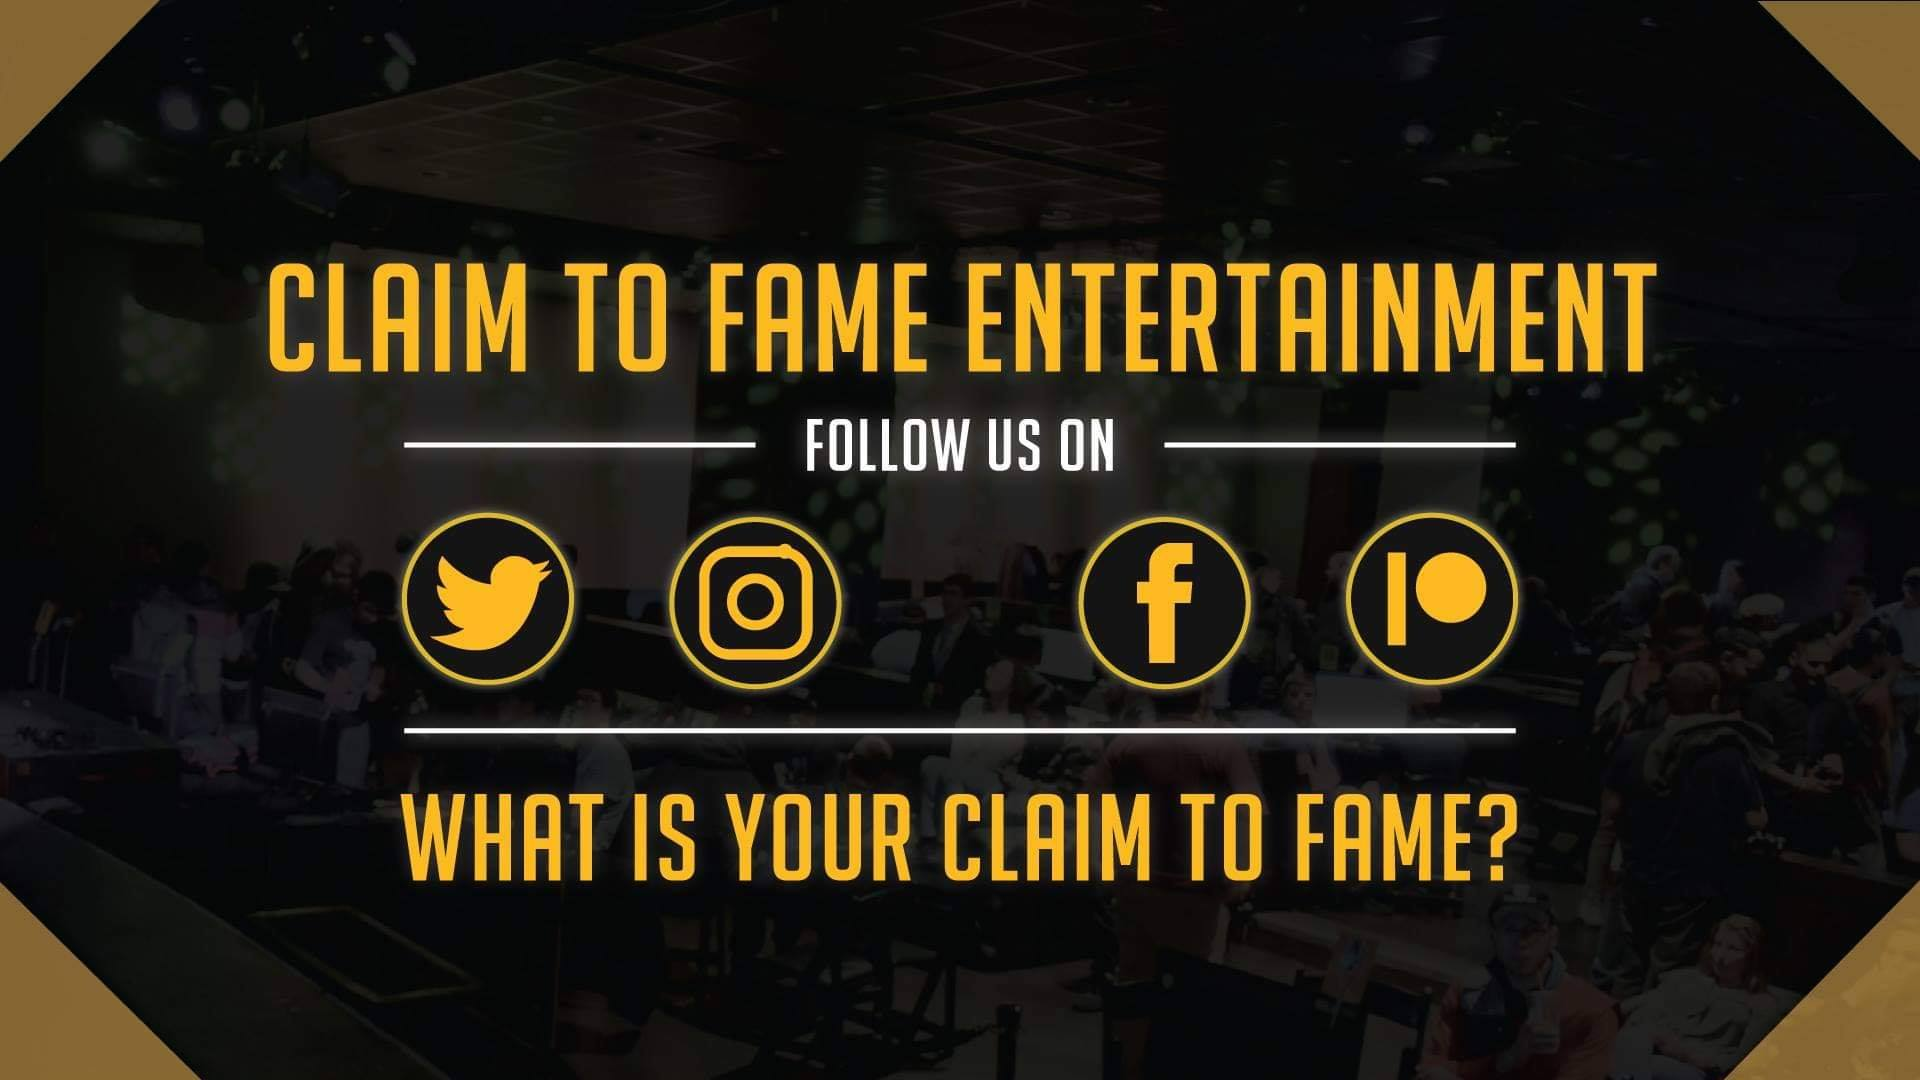 Claim to Fame Entertainment - Social Media